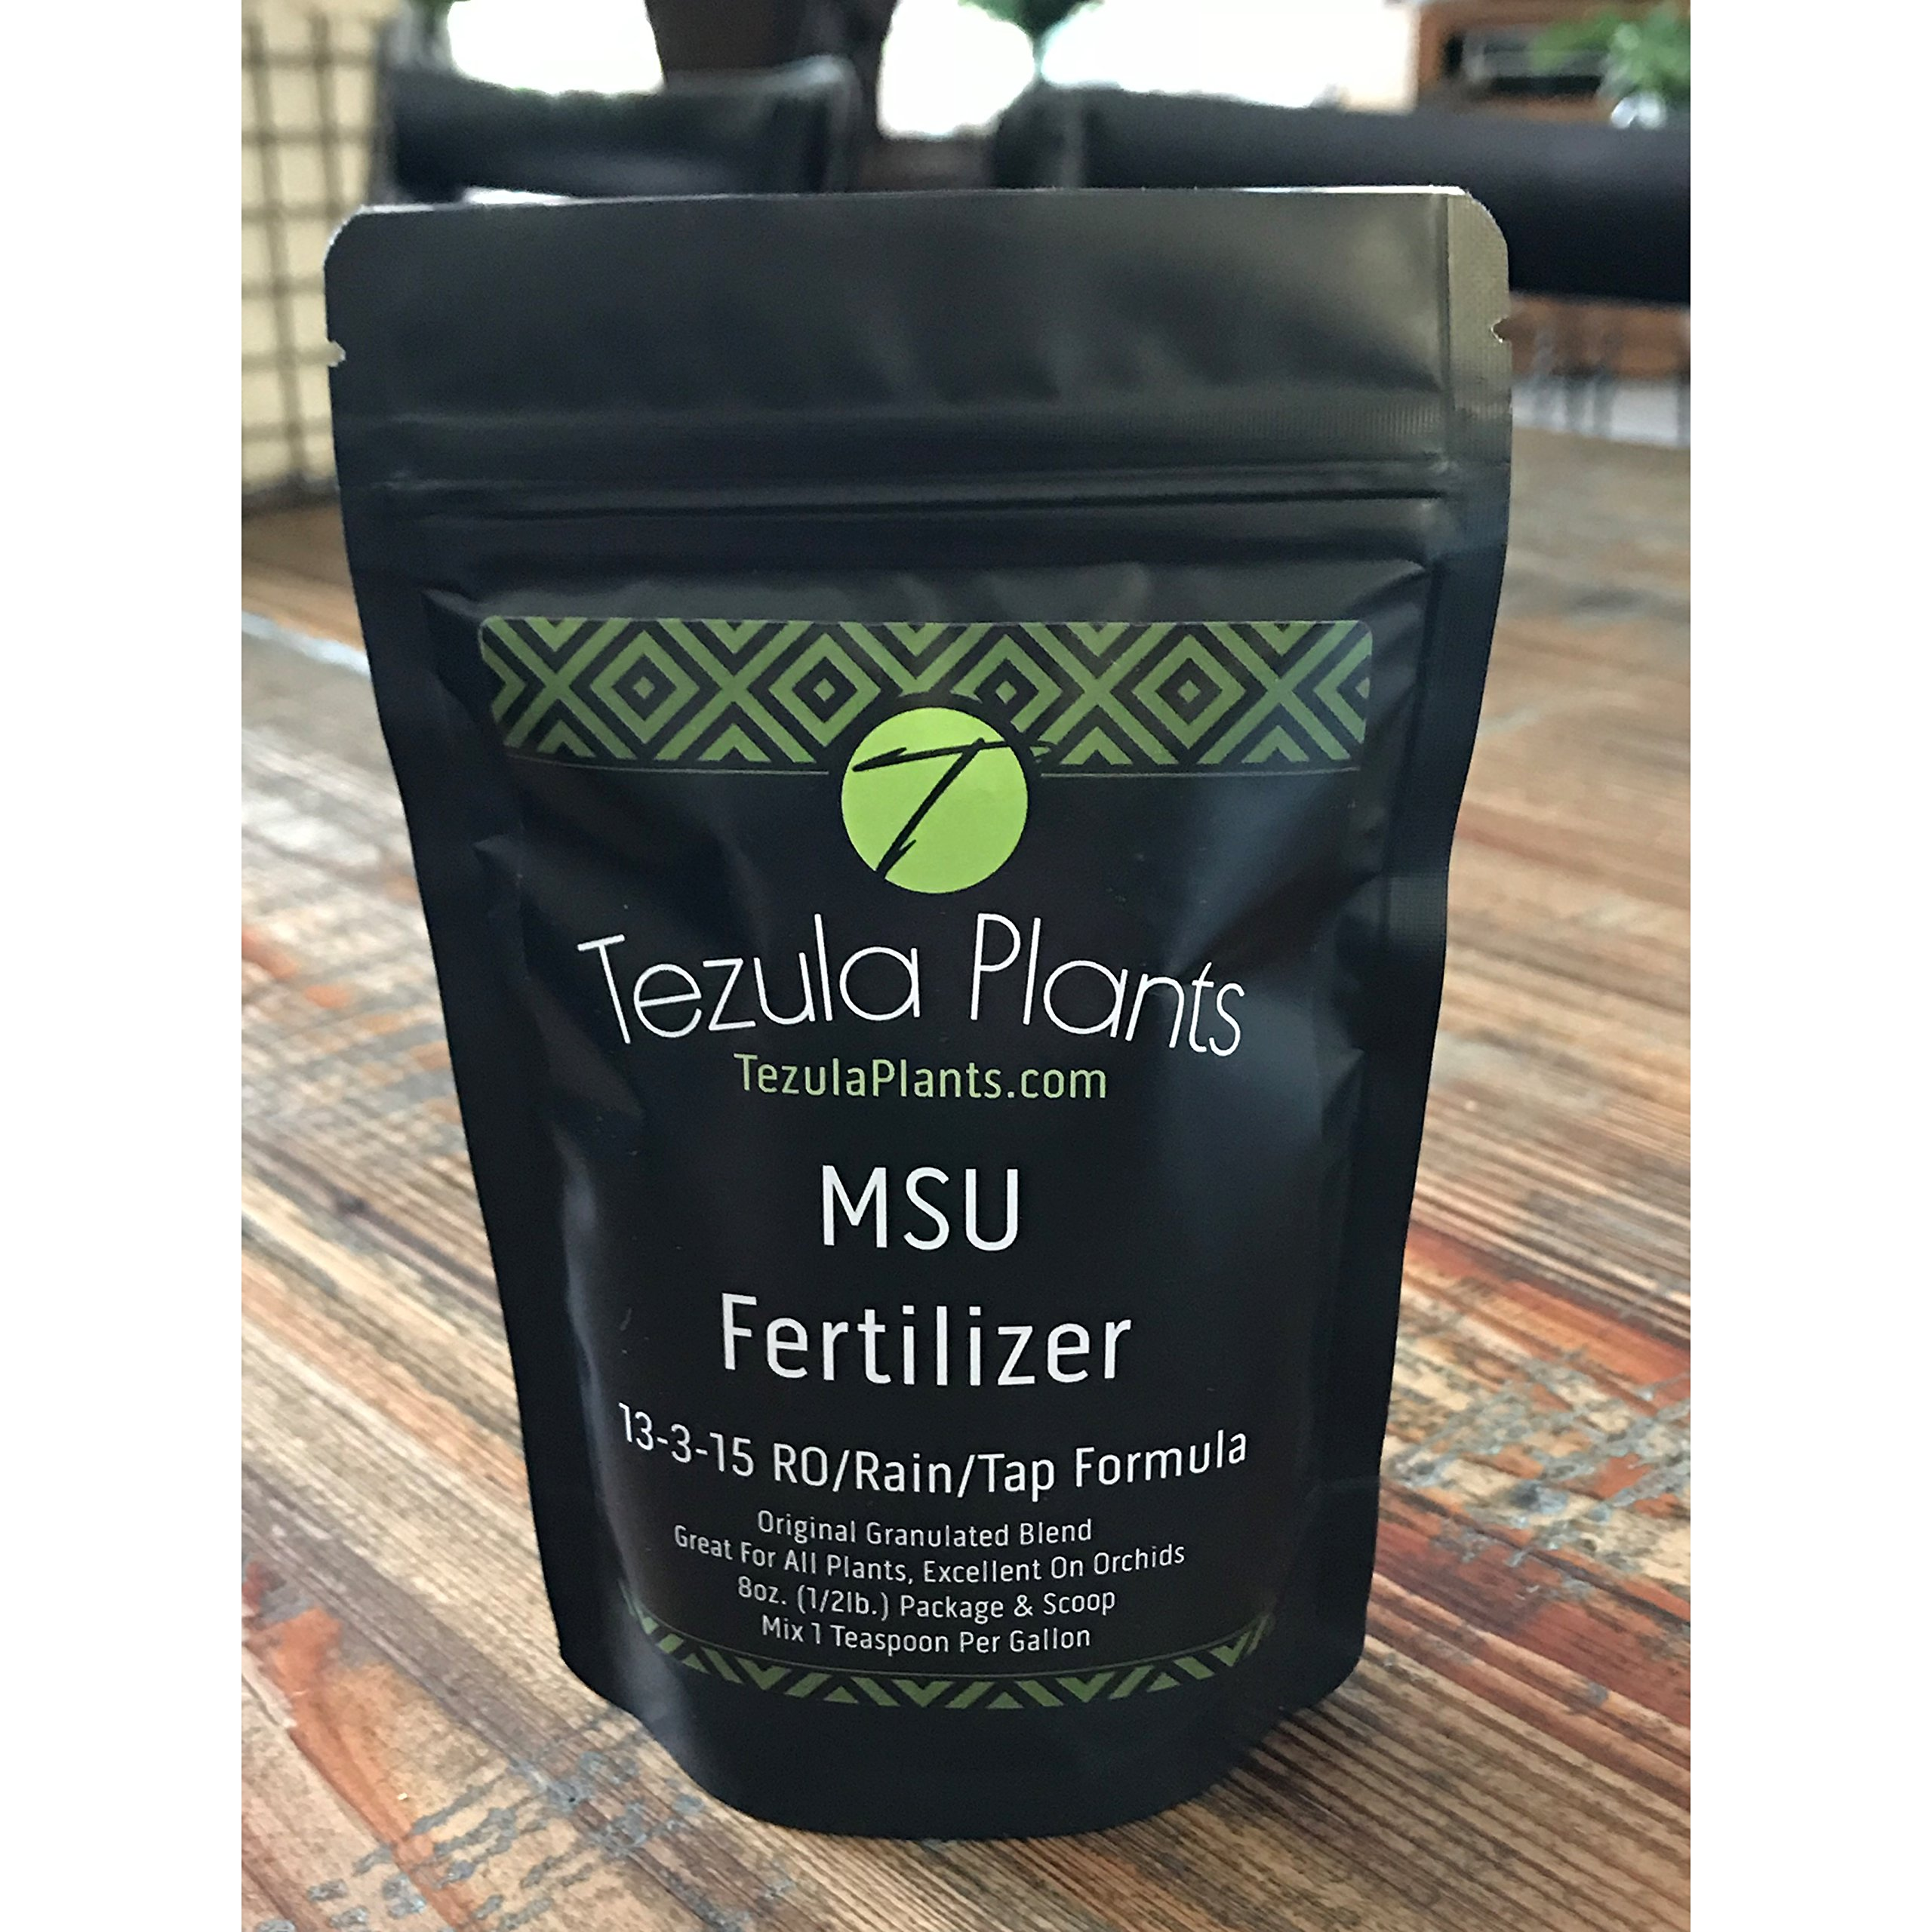 MSU Orchid Fertilizer 13-3-15 Reverse Osmosis, rain, tap Water Formula. 1/2 Pound with Scoop & Usage Guide (Greencare)